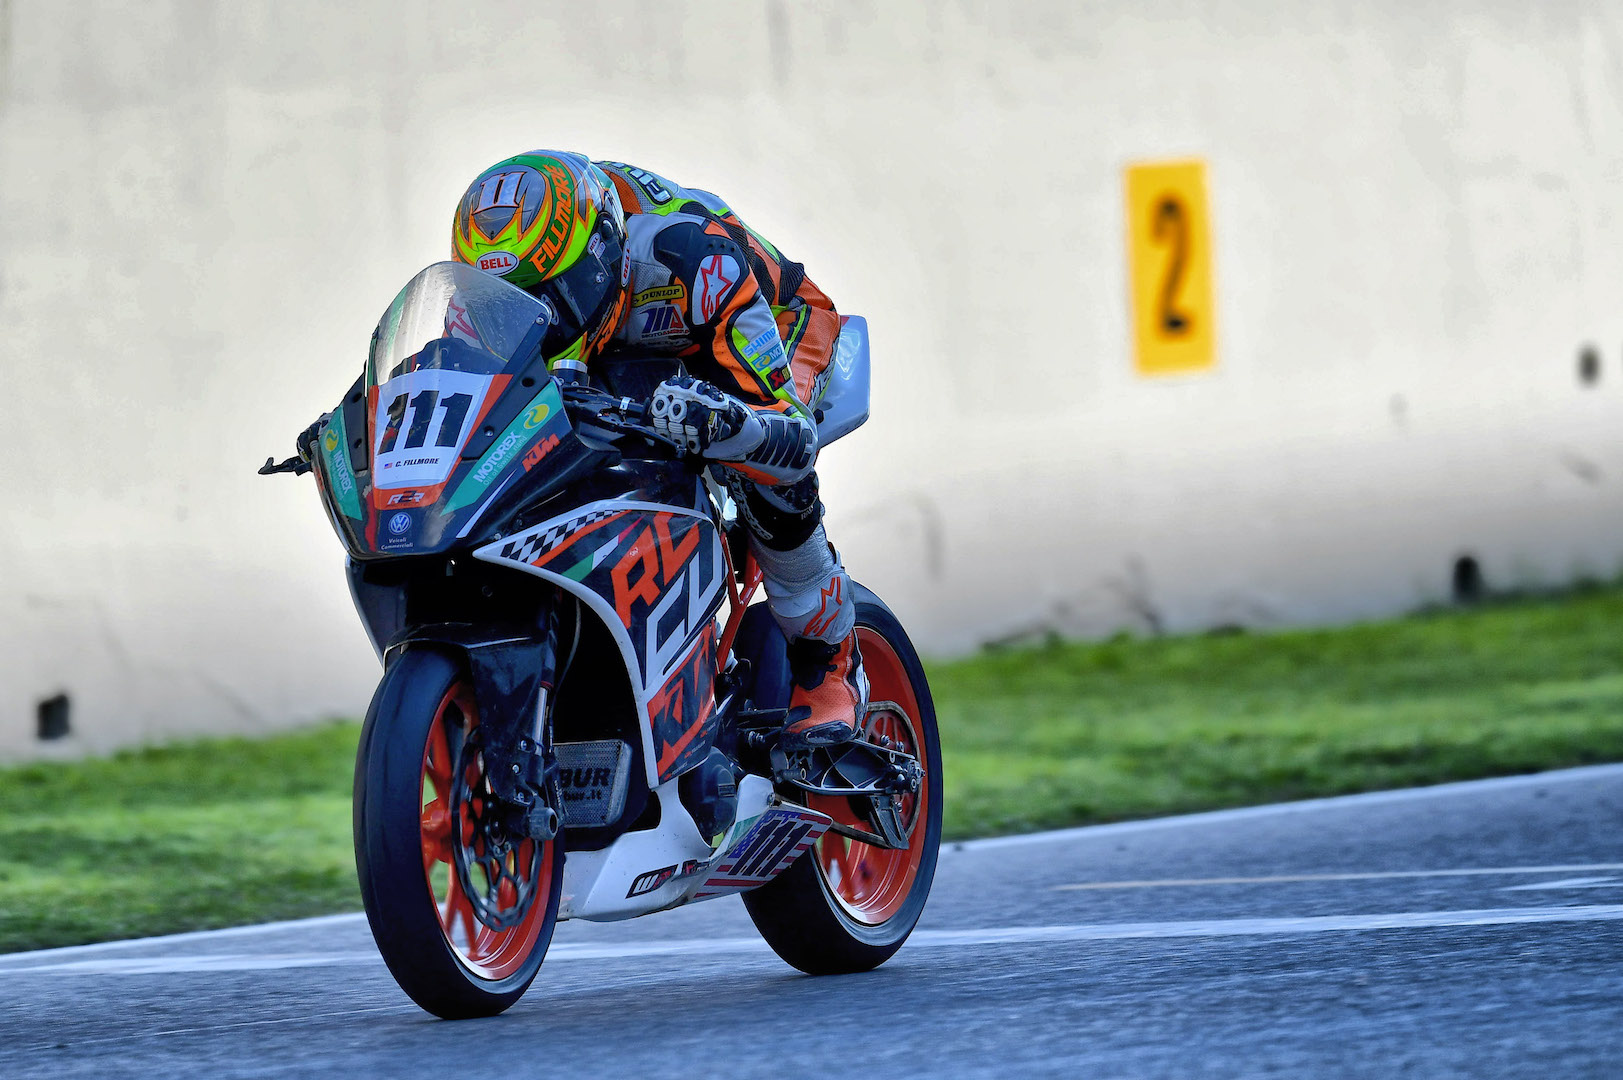 Chris Fillmore Wins Italian Supersport 300 Race On Ktm Rc 390 Prototype Cycle World